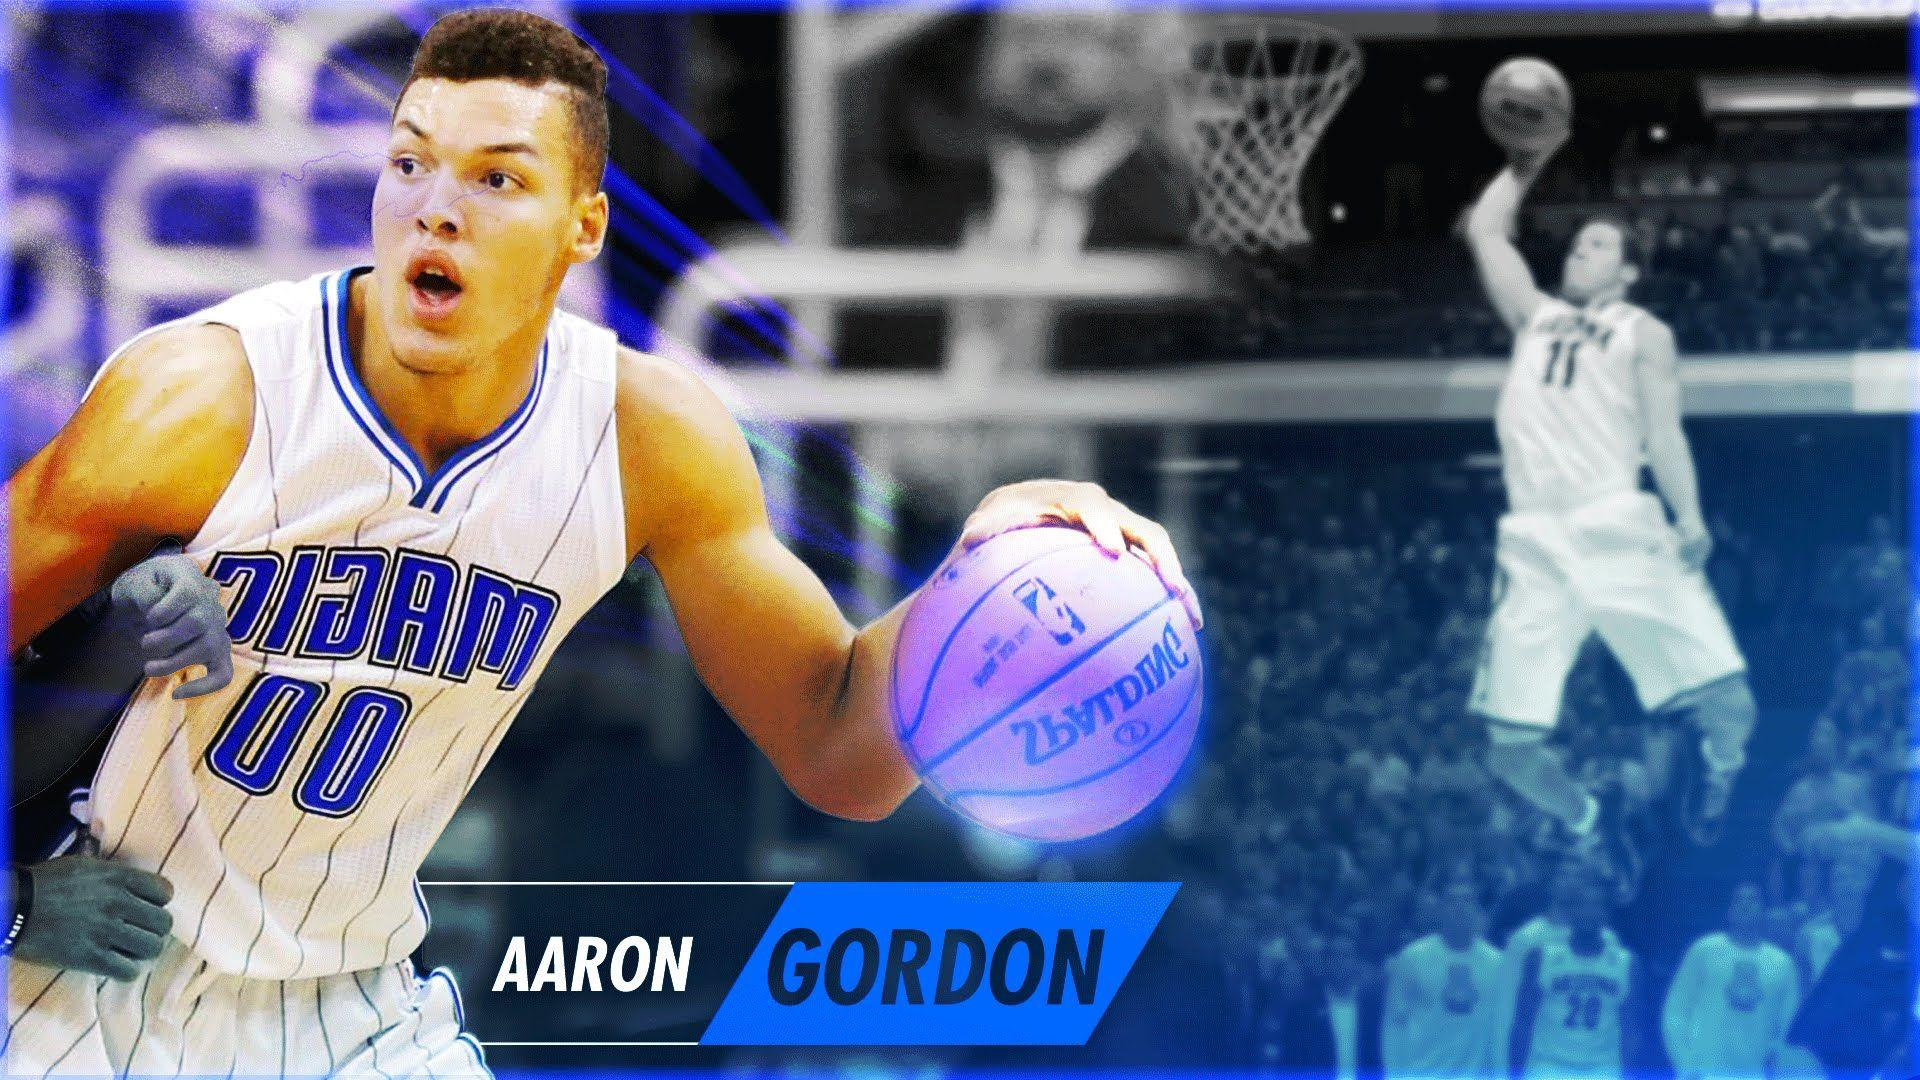 Aaron Gordon Wallpaper 5699 | PIXZONE